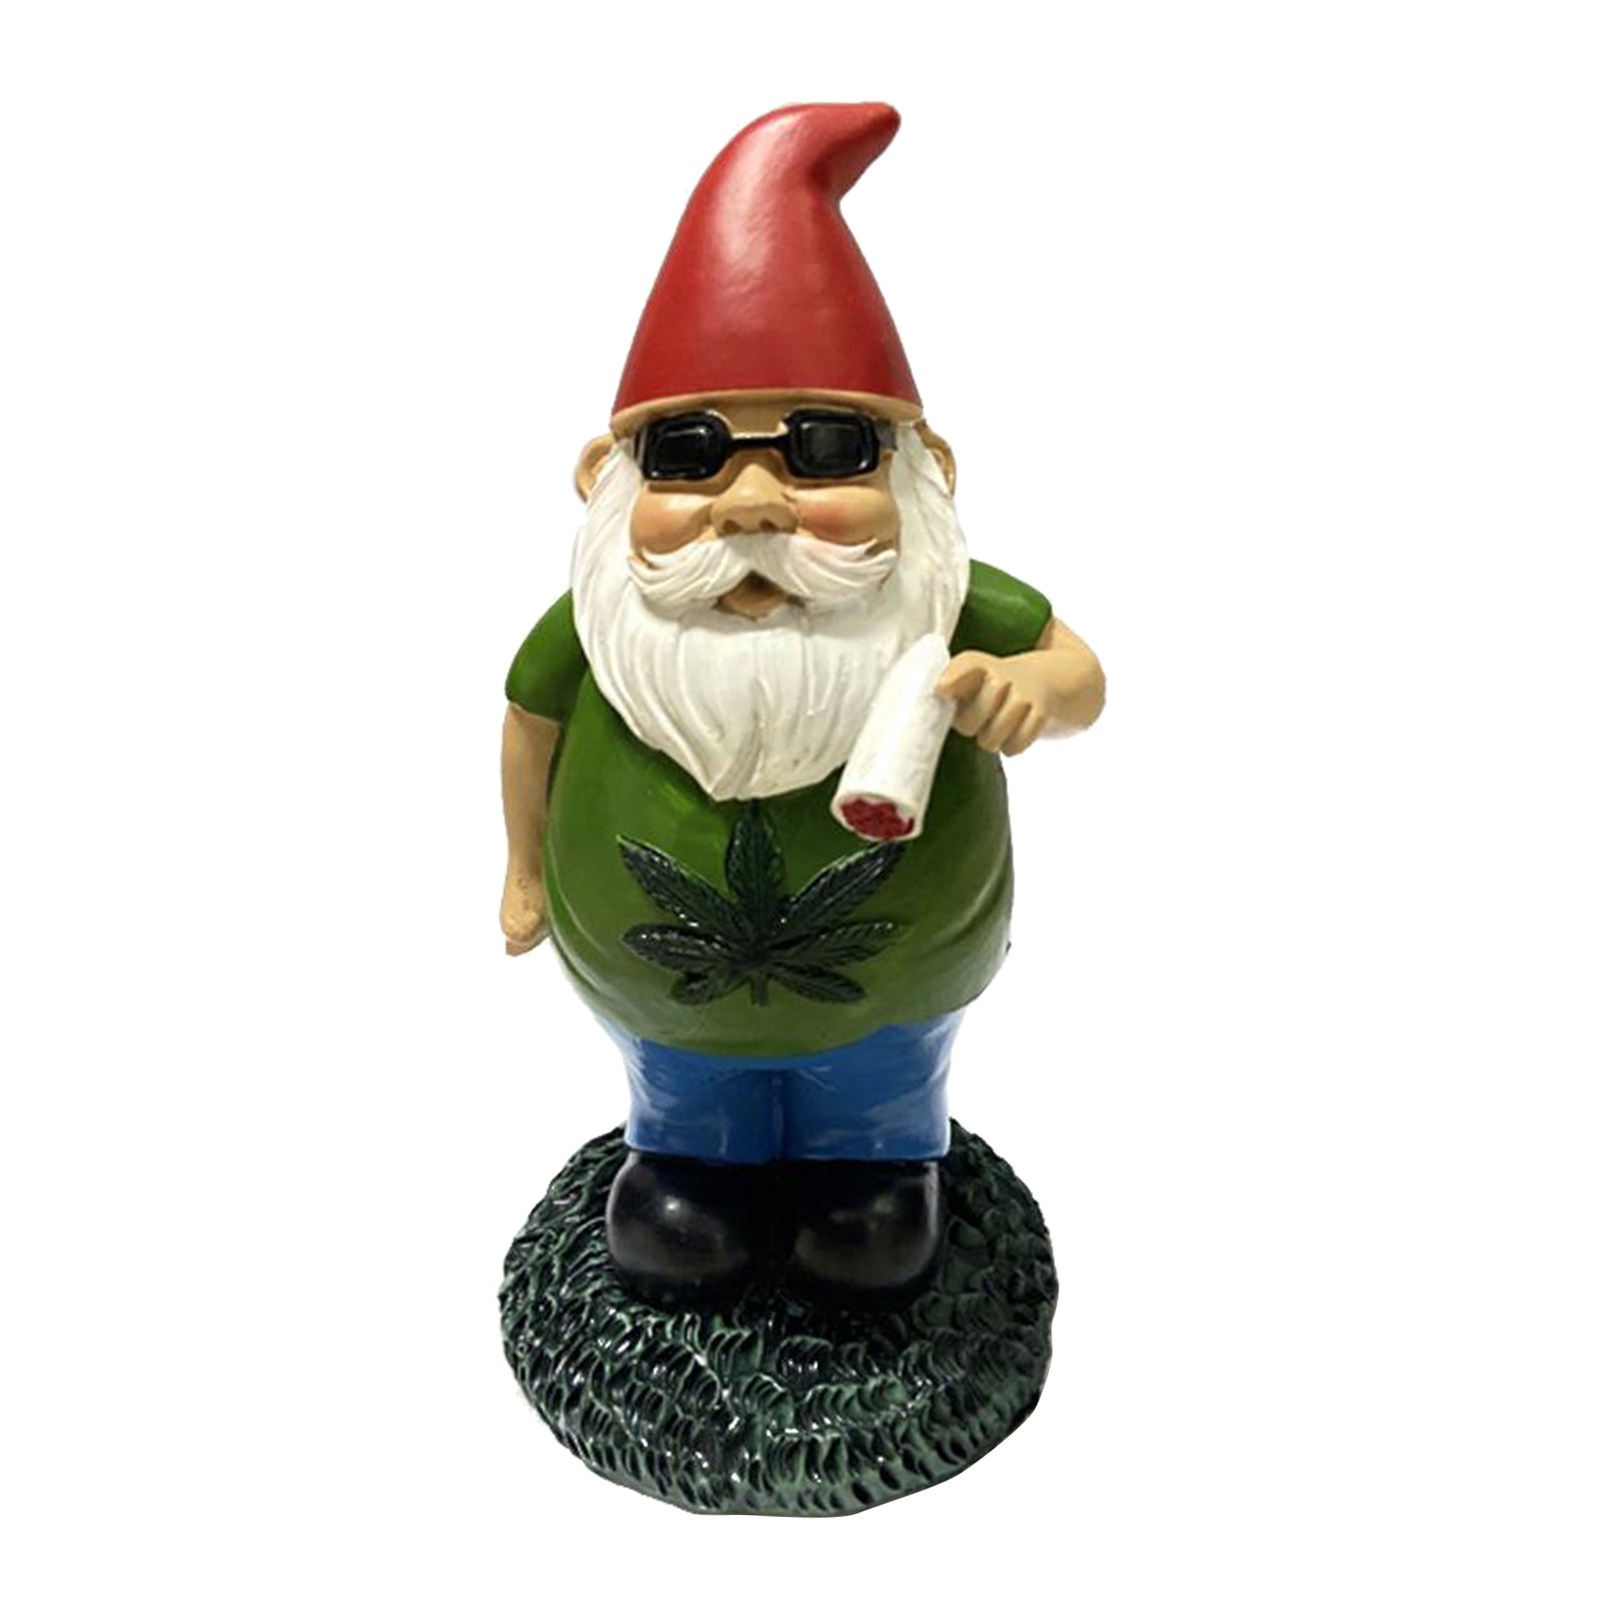 thumbnail 36 - Garden Gnome Statue Small Resin Lawn Gnome Scuplture Funny Indoor Outdoor Decor